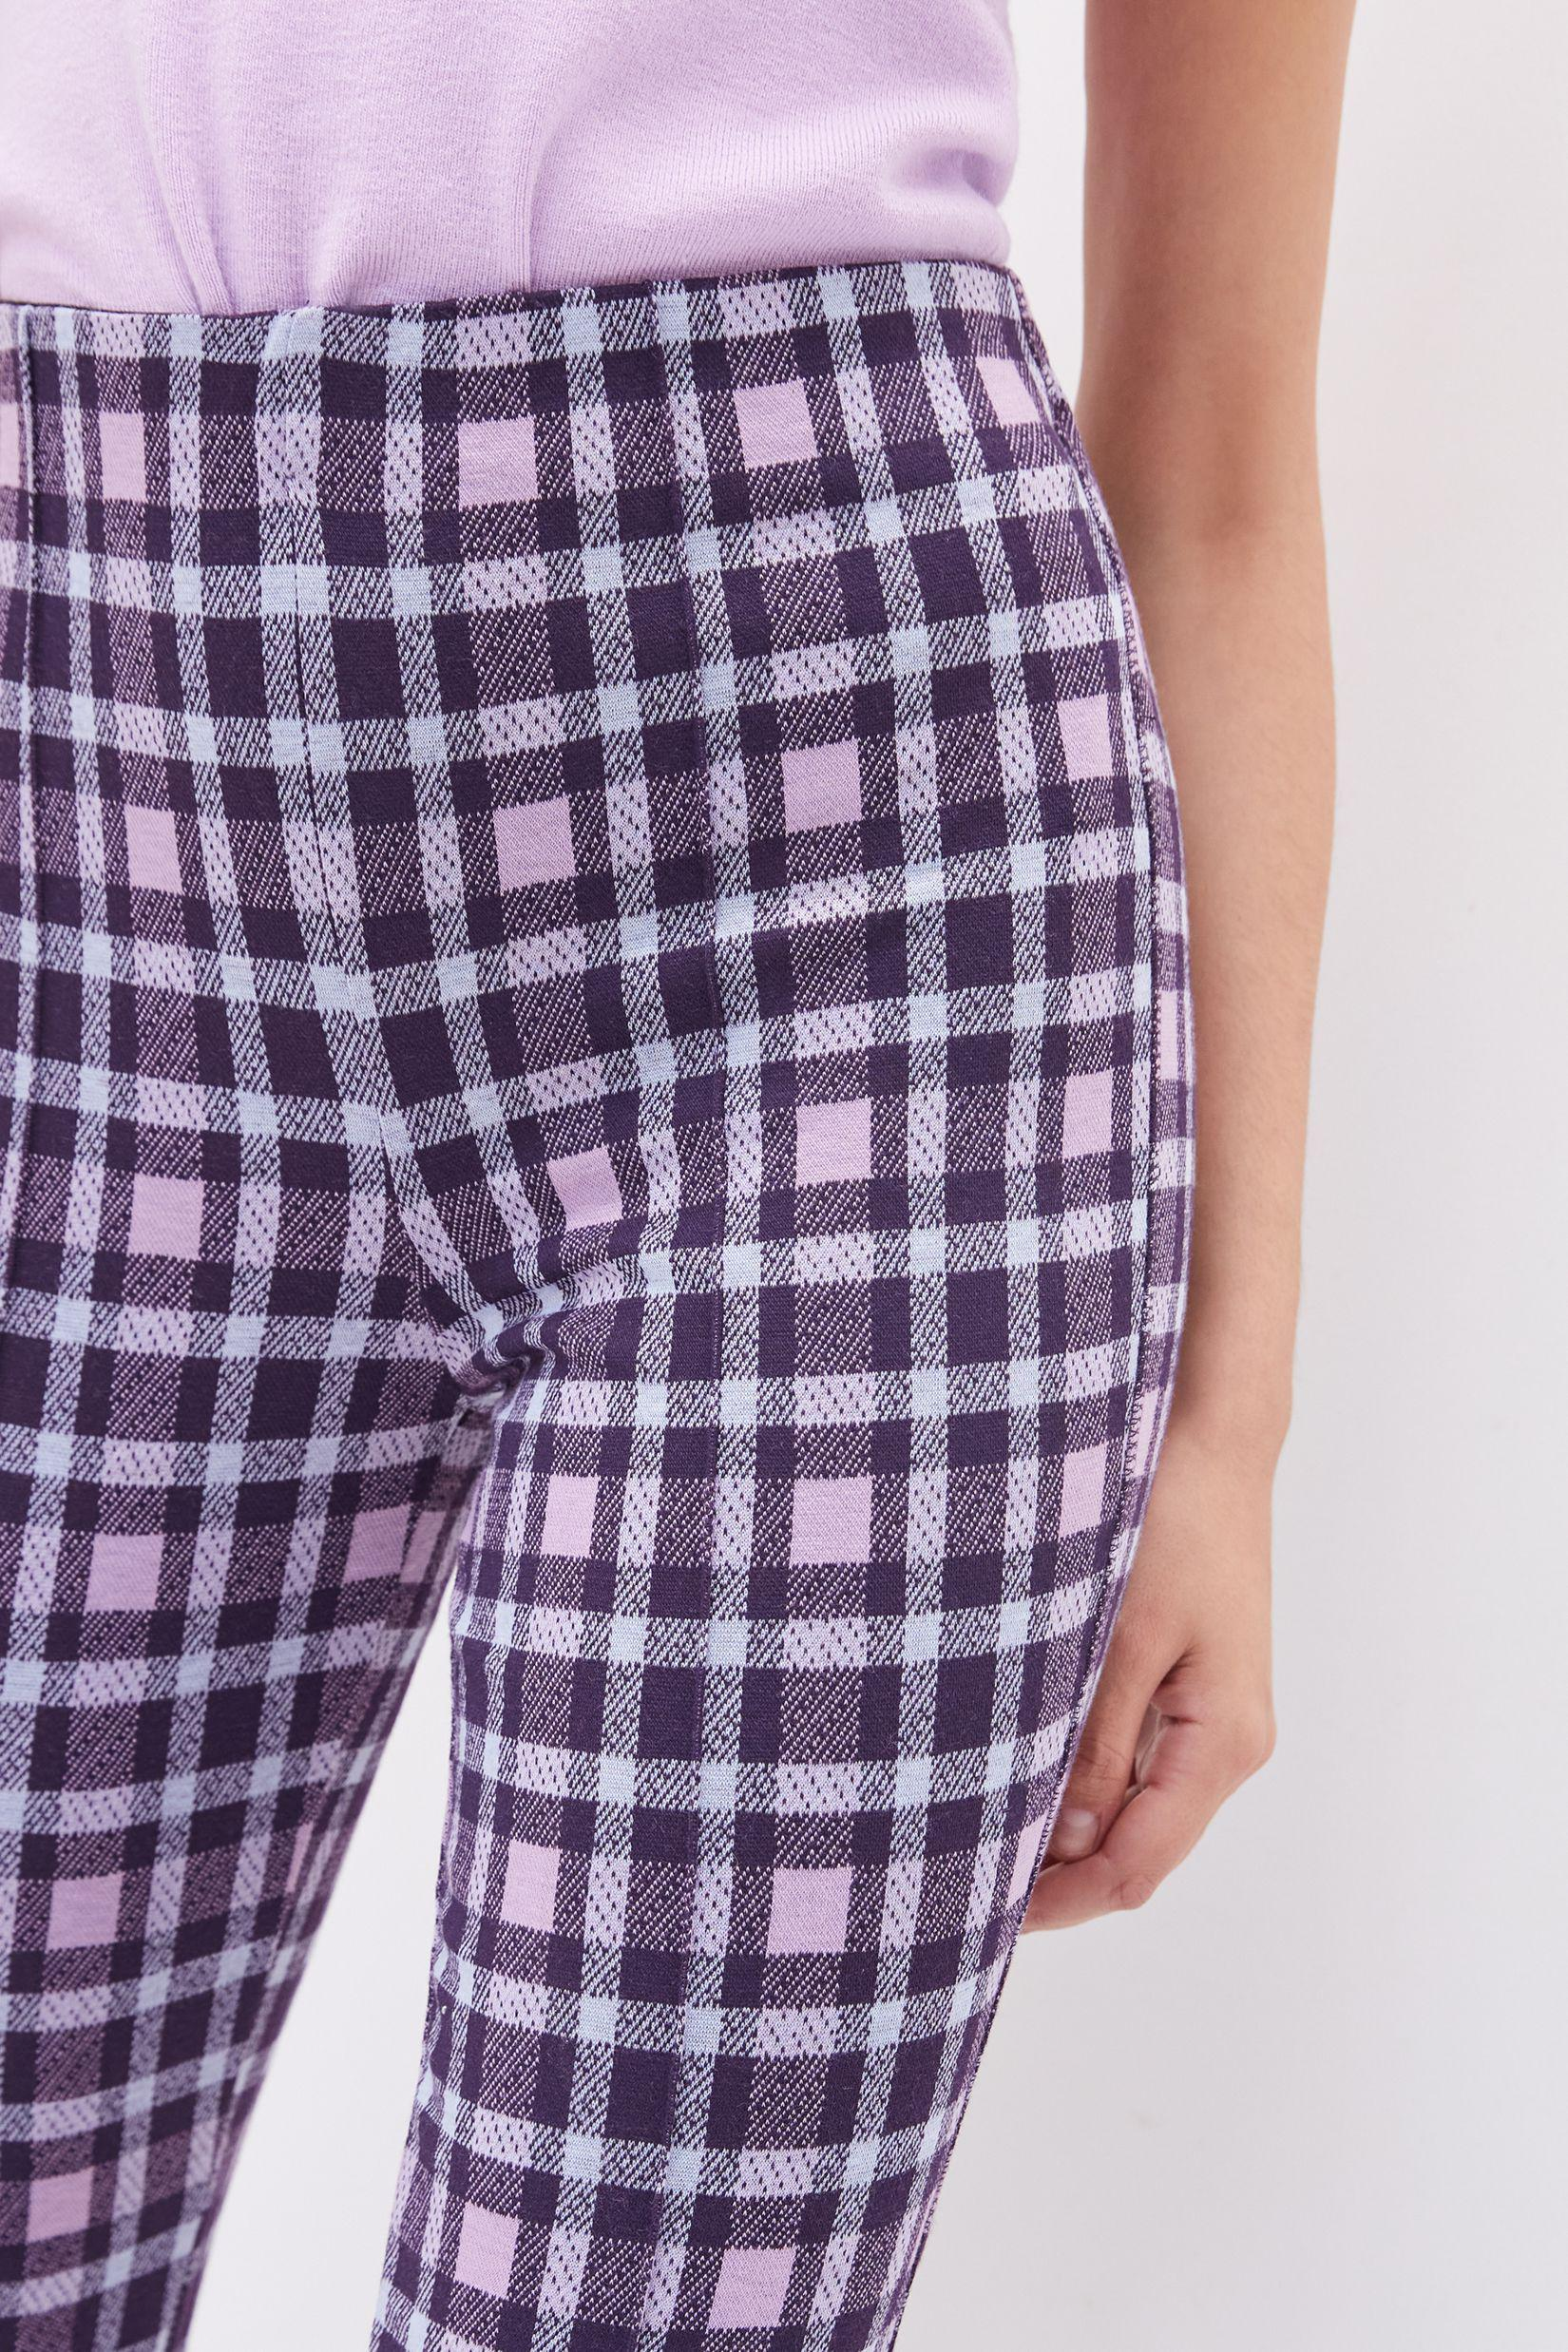 Maeve Cropped Flare Pants 3